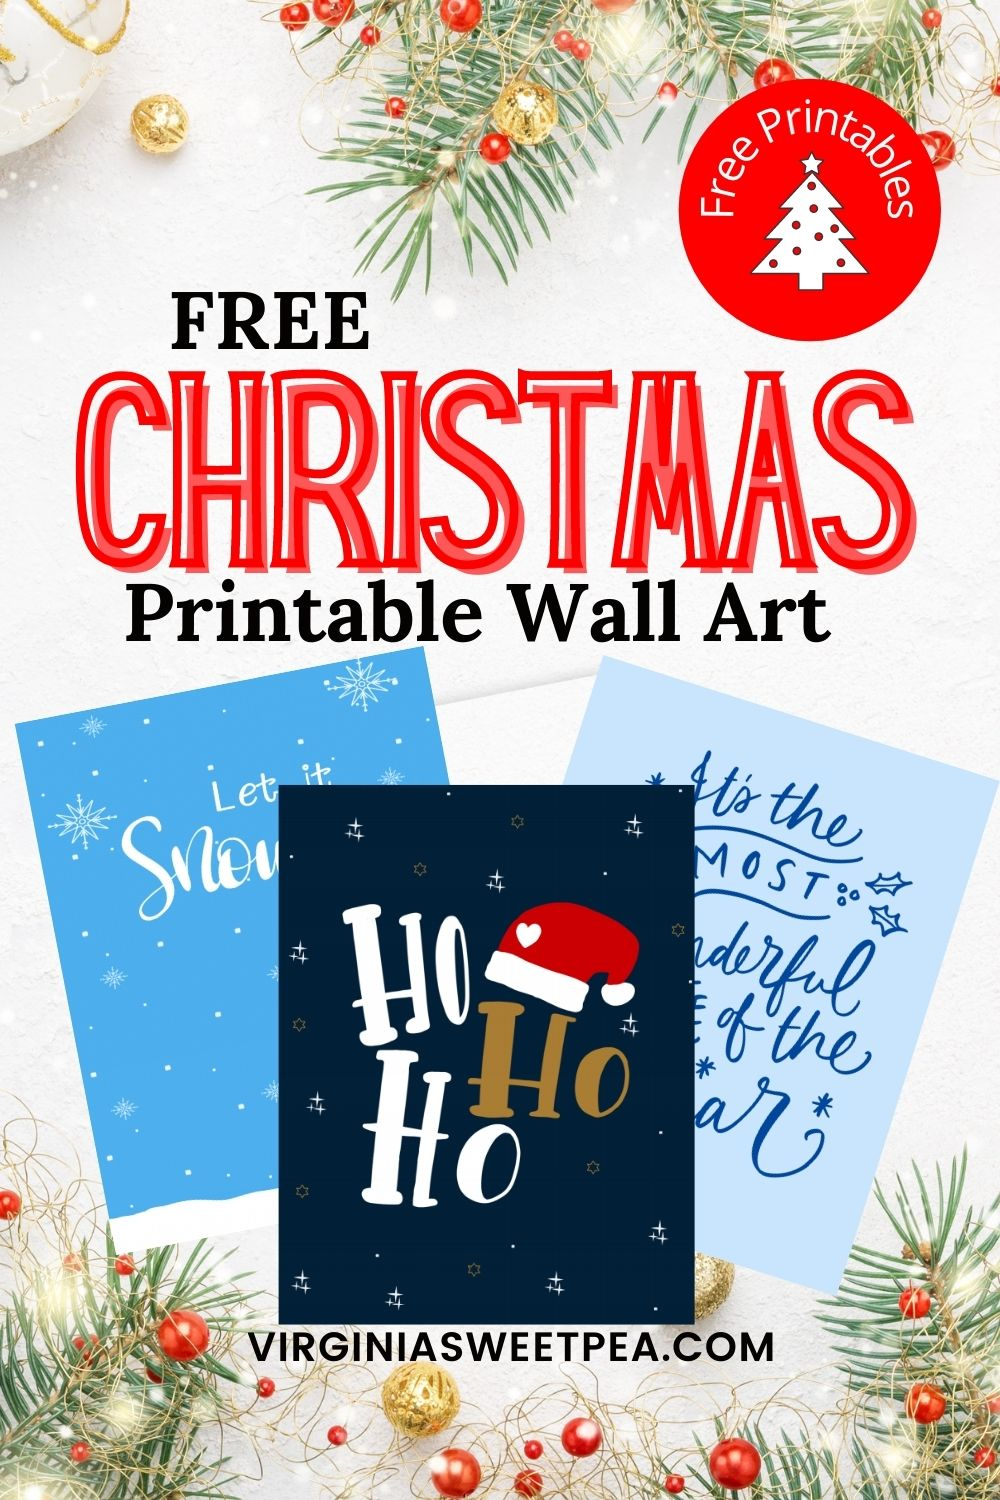 Printables are a wonderful way to decorate your home for Christmas on a budget.  Print these pretty printables out, pop them in a frame, and you have instant Christmas decor.  Make a gift by framing a printable for a friend. via @spaula